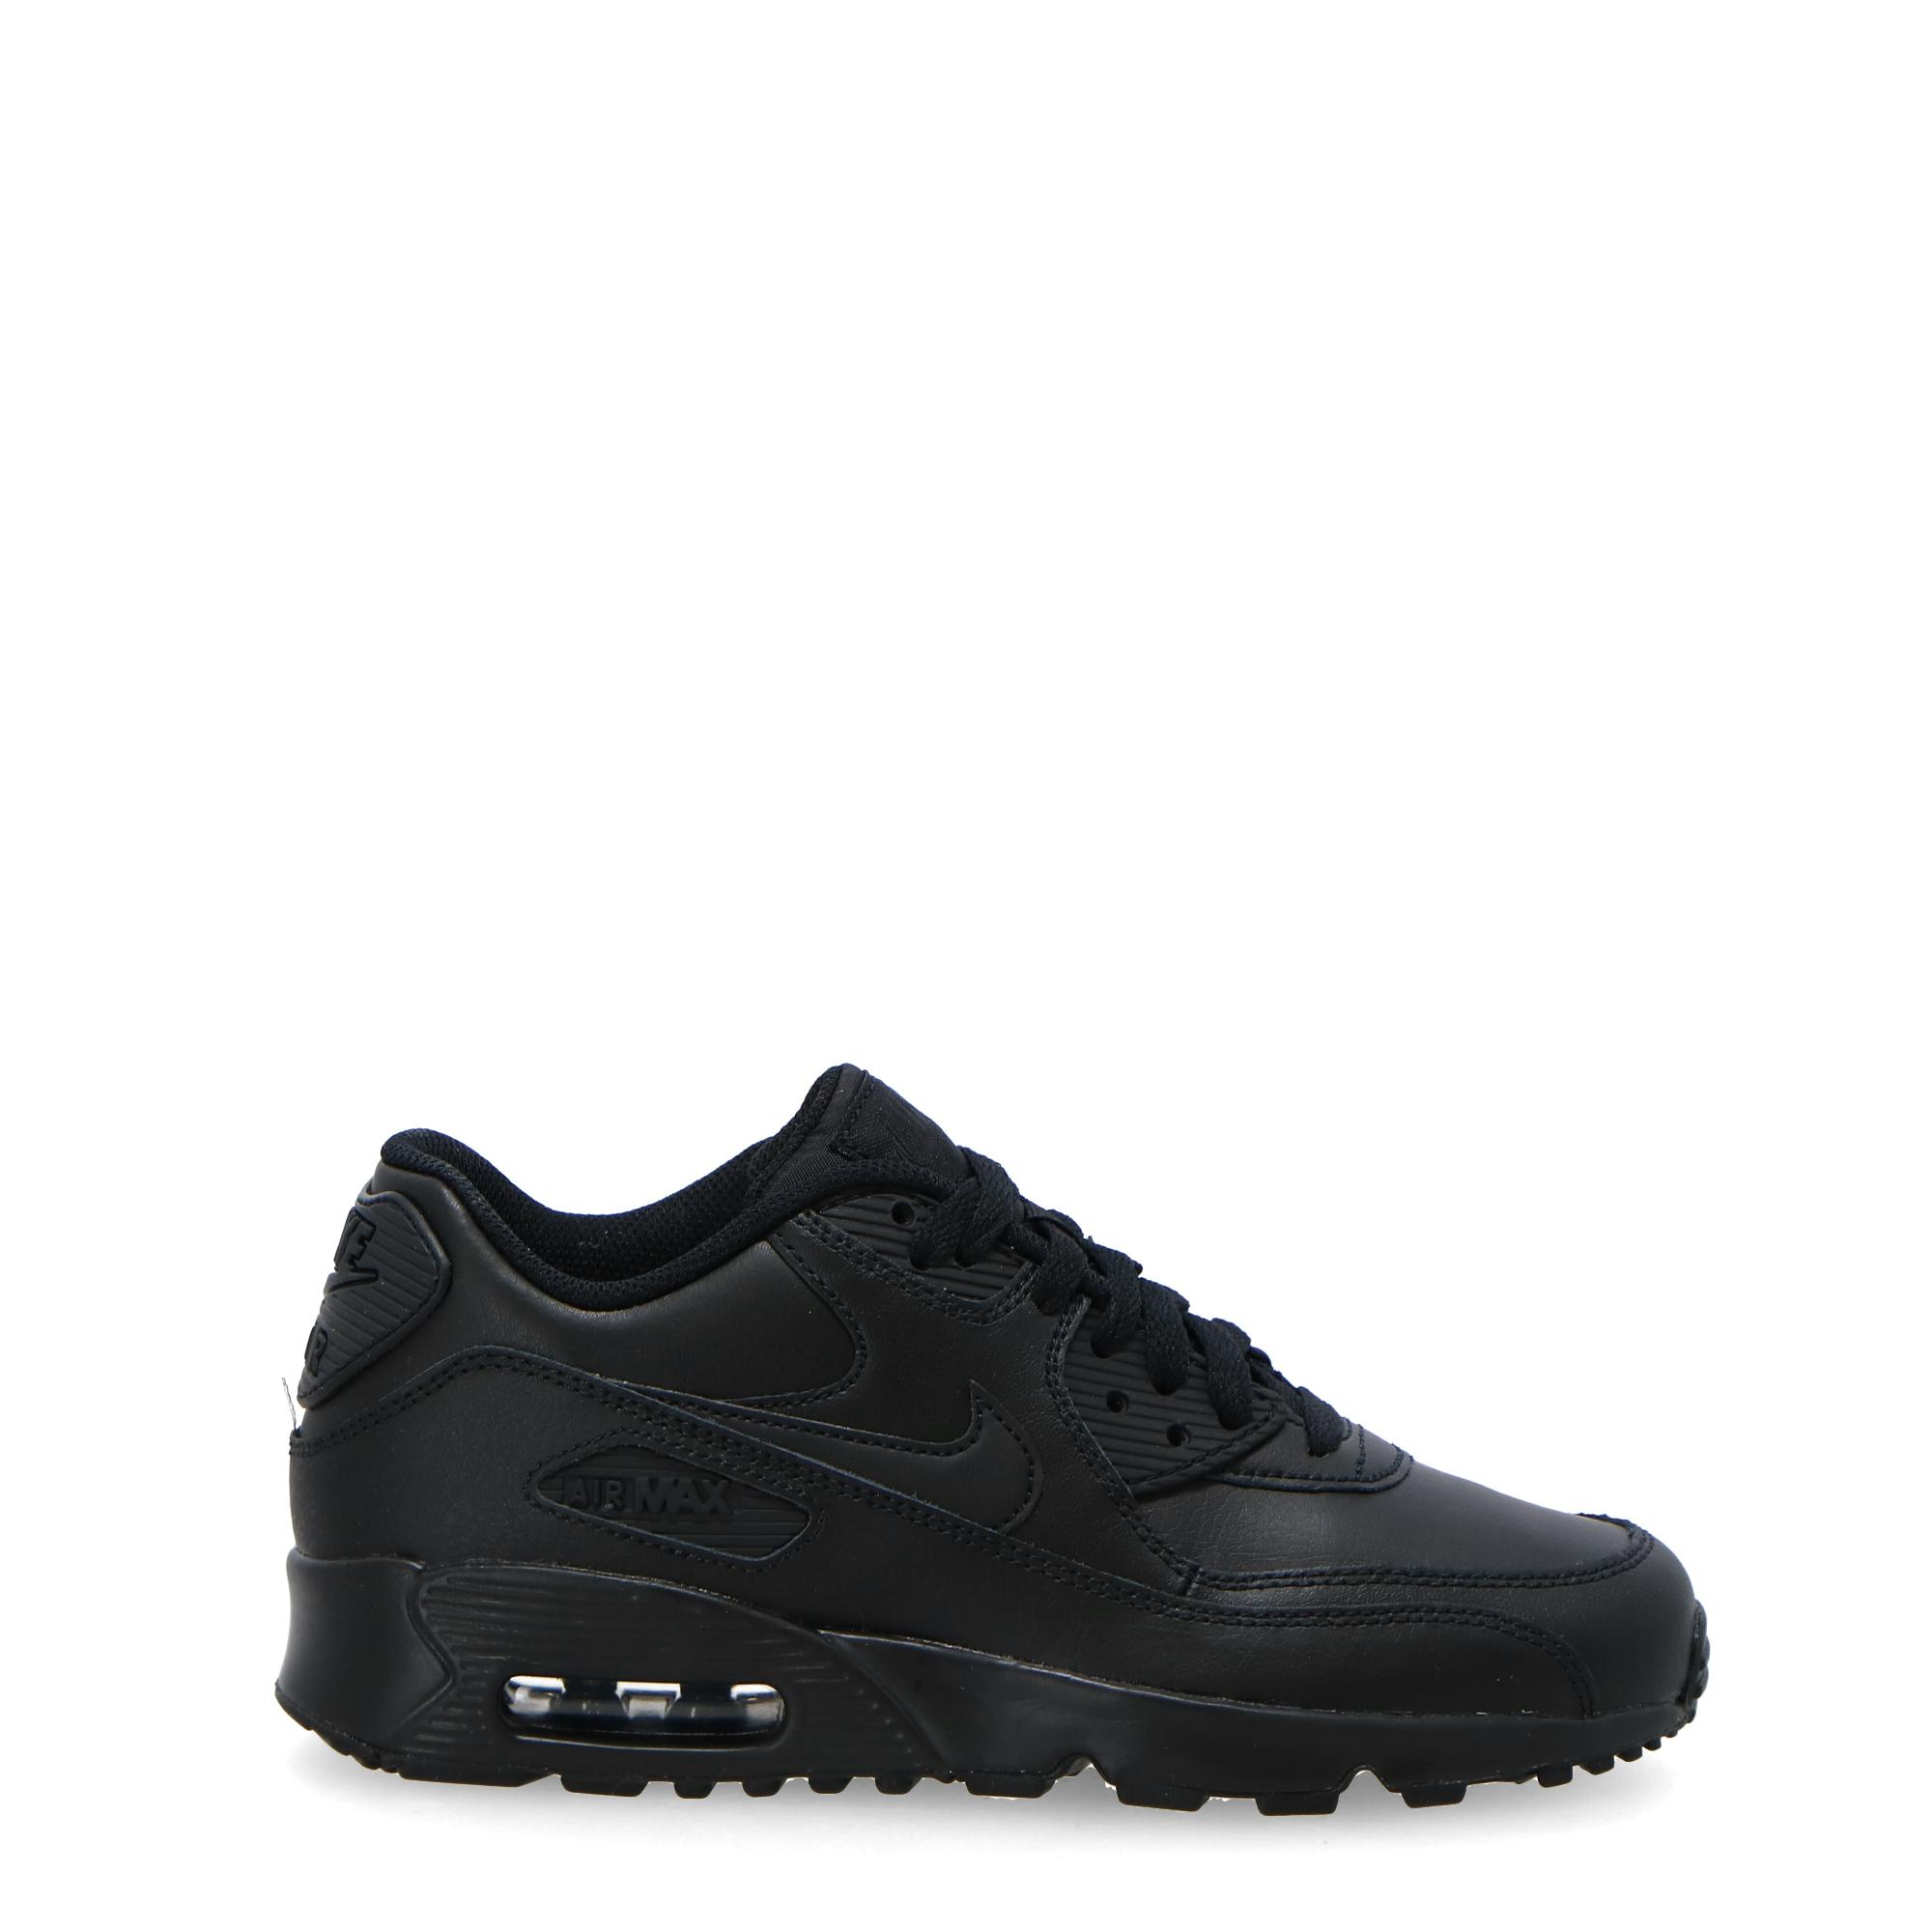 Nike Air Max 90 Ltr Gs Leather Youth Lifestyle Sneakers